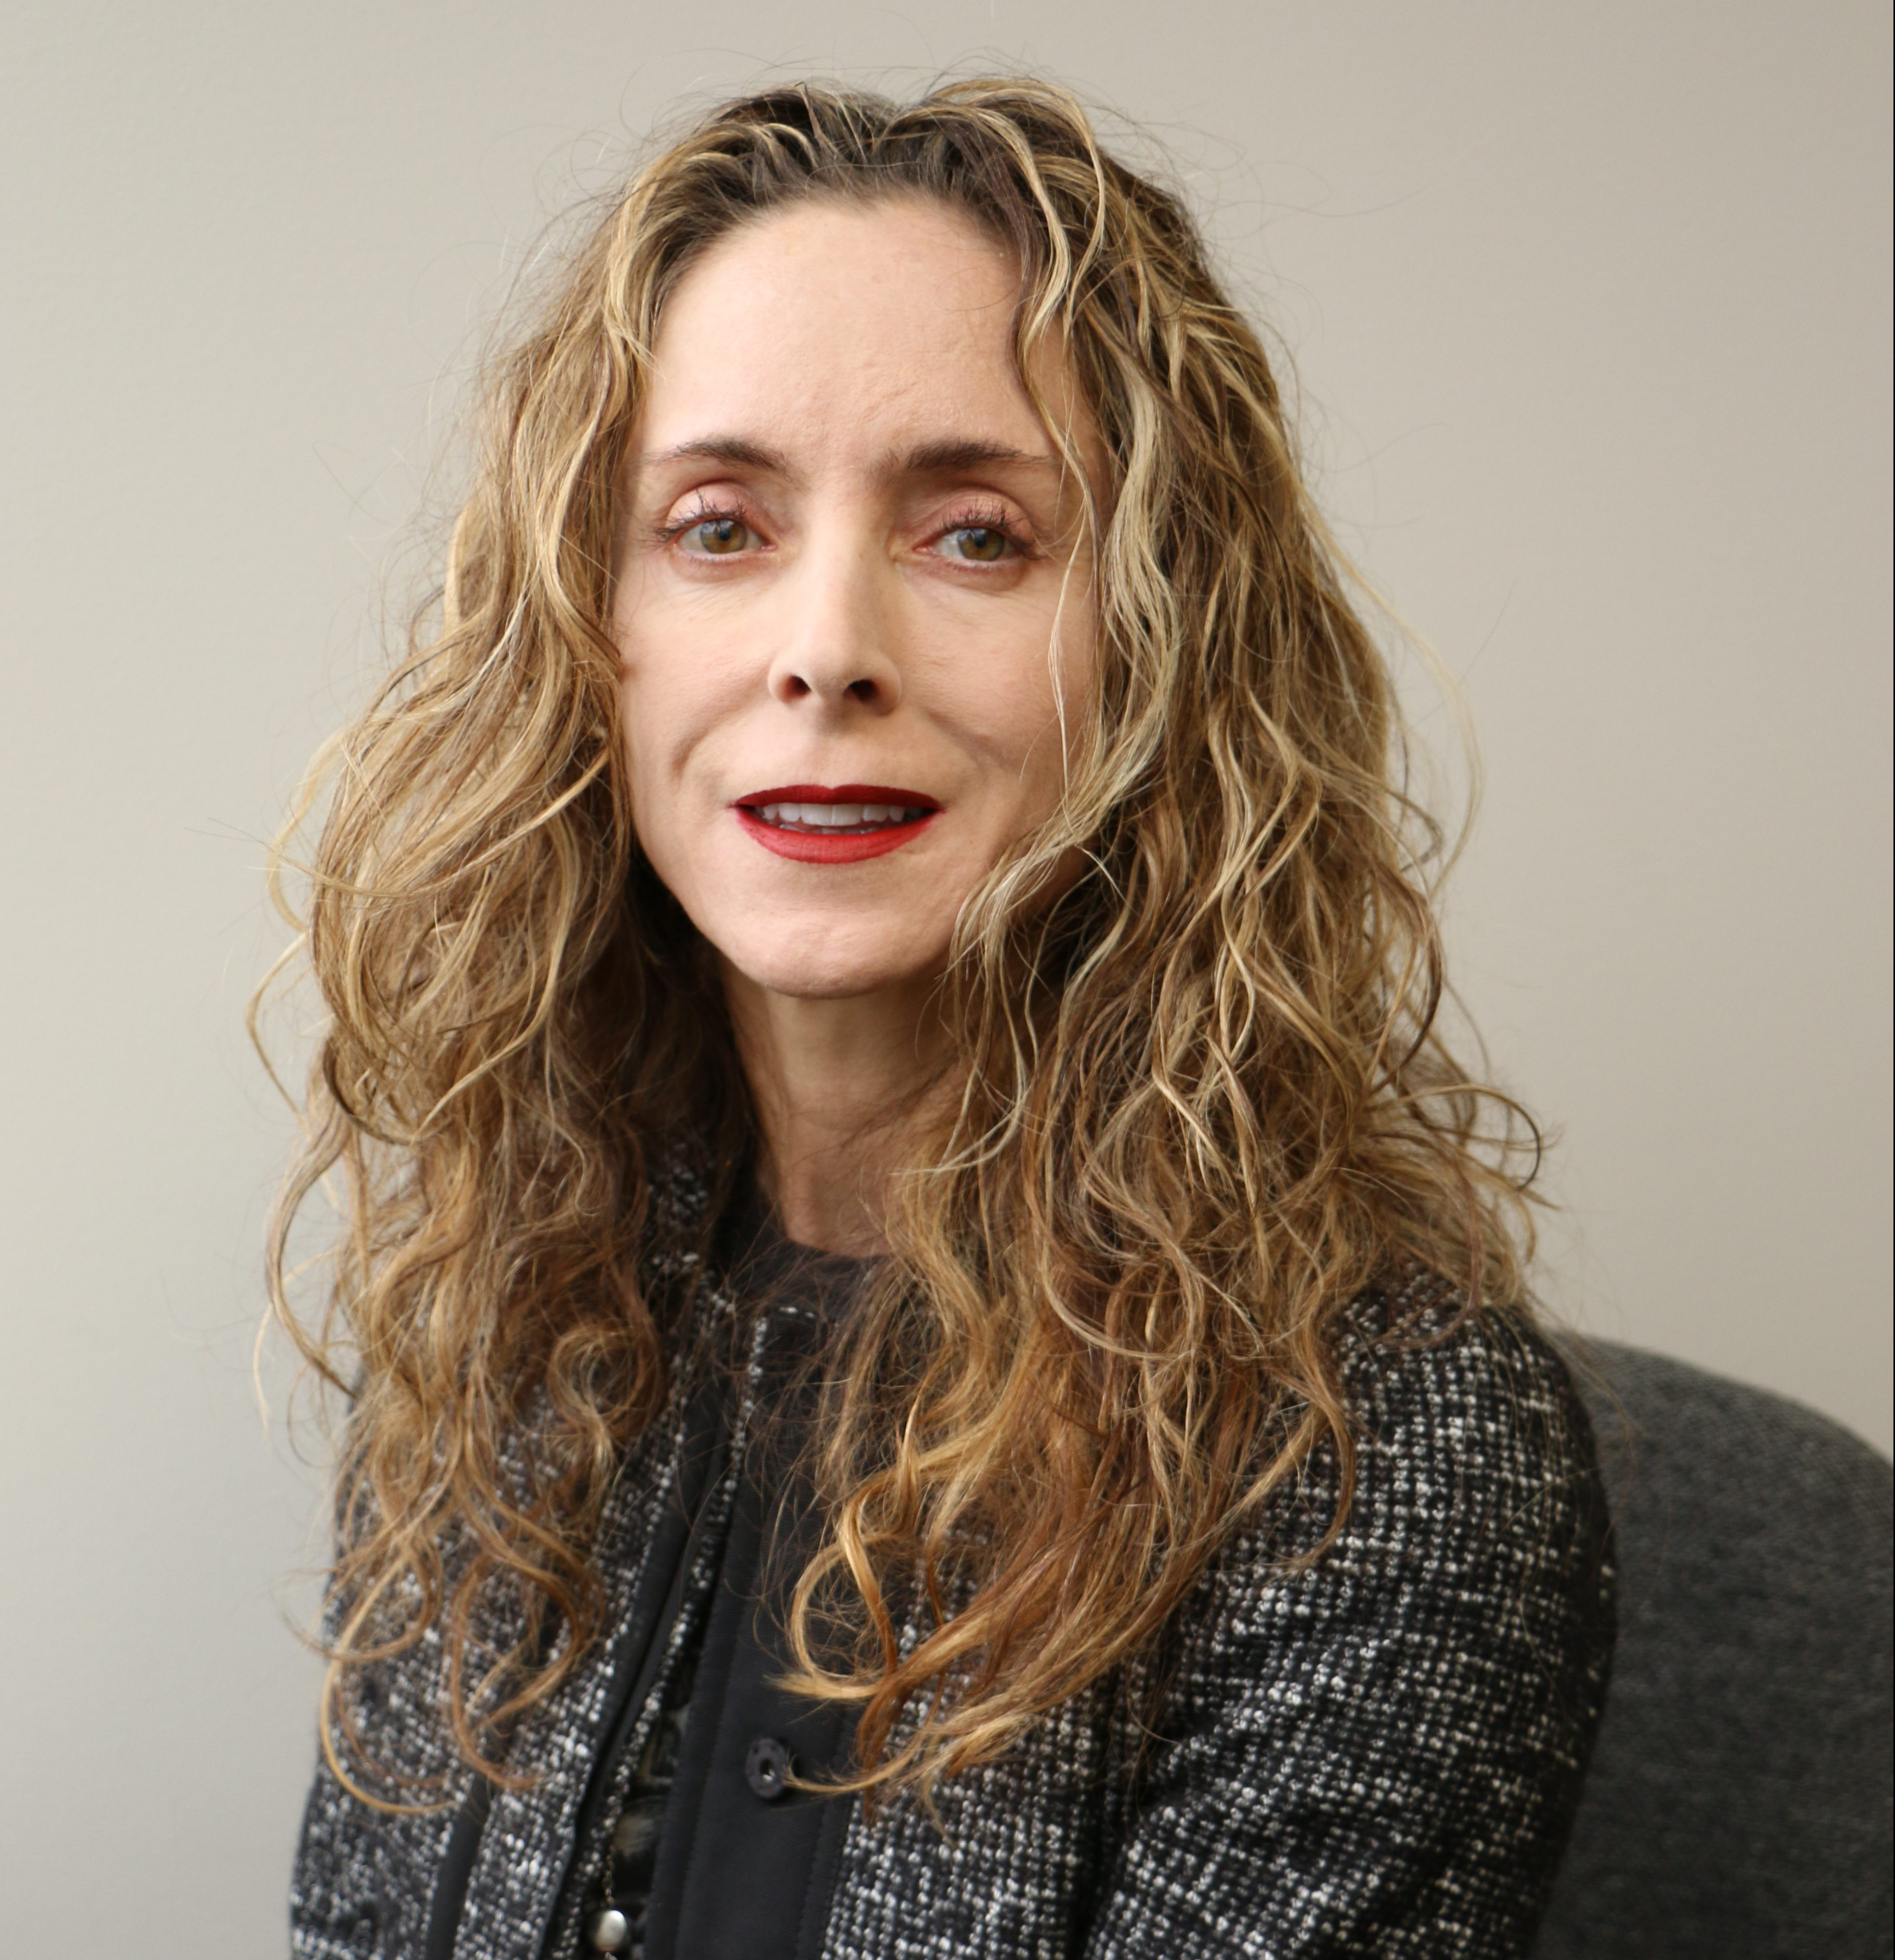 Dr. Tricia Langlois